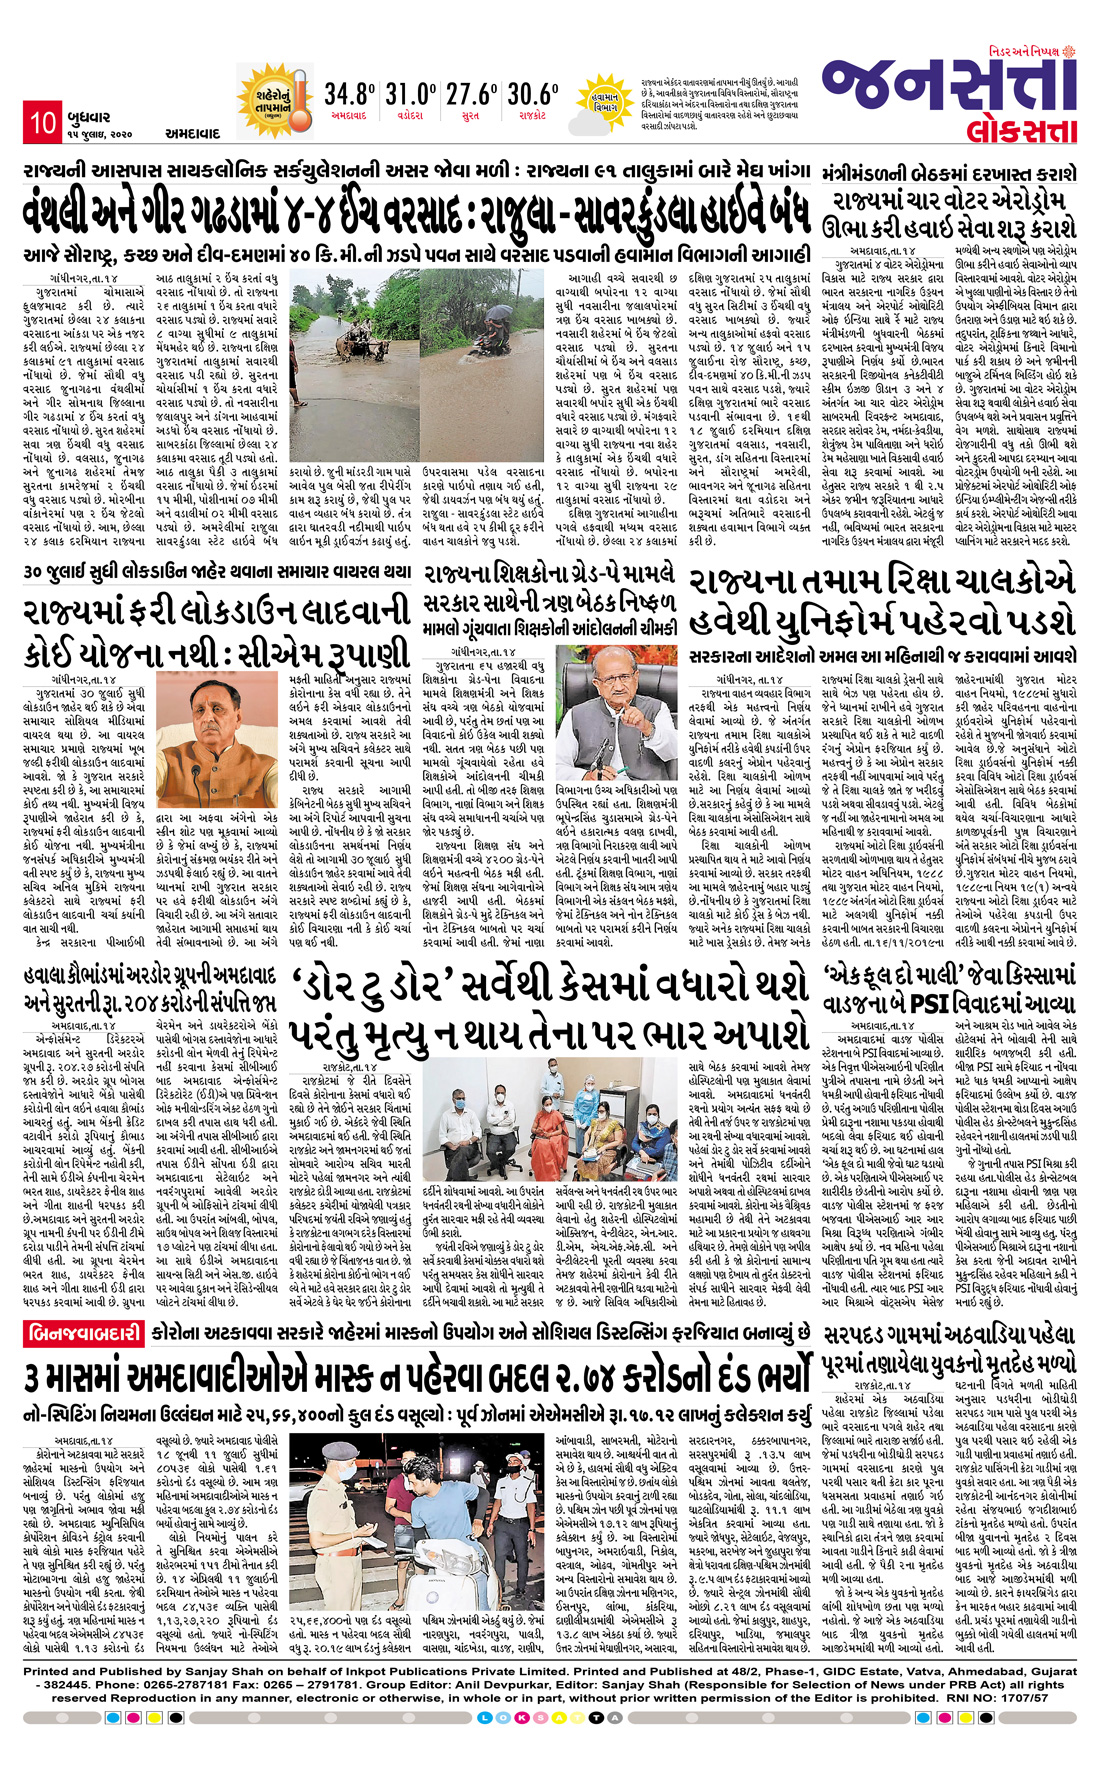 Loksatta Jansatta News Papaer E-paper dated 2020-07-15 | Page 10